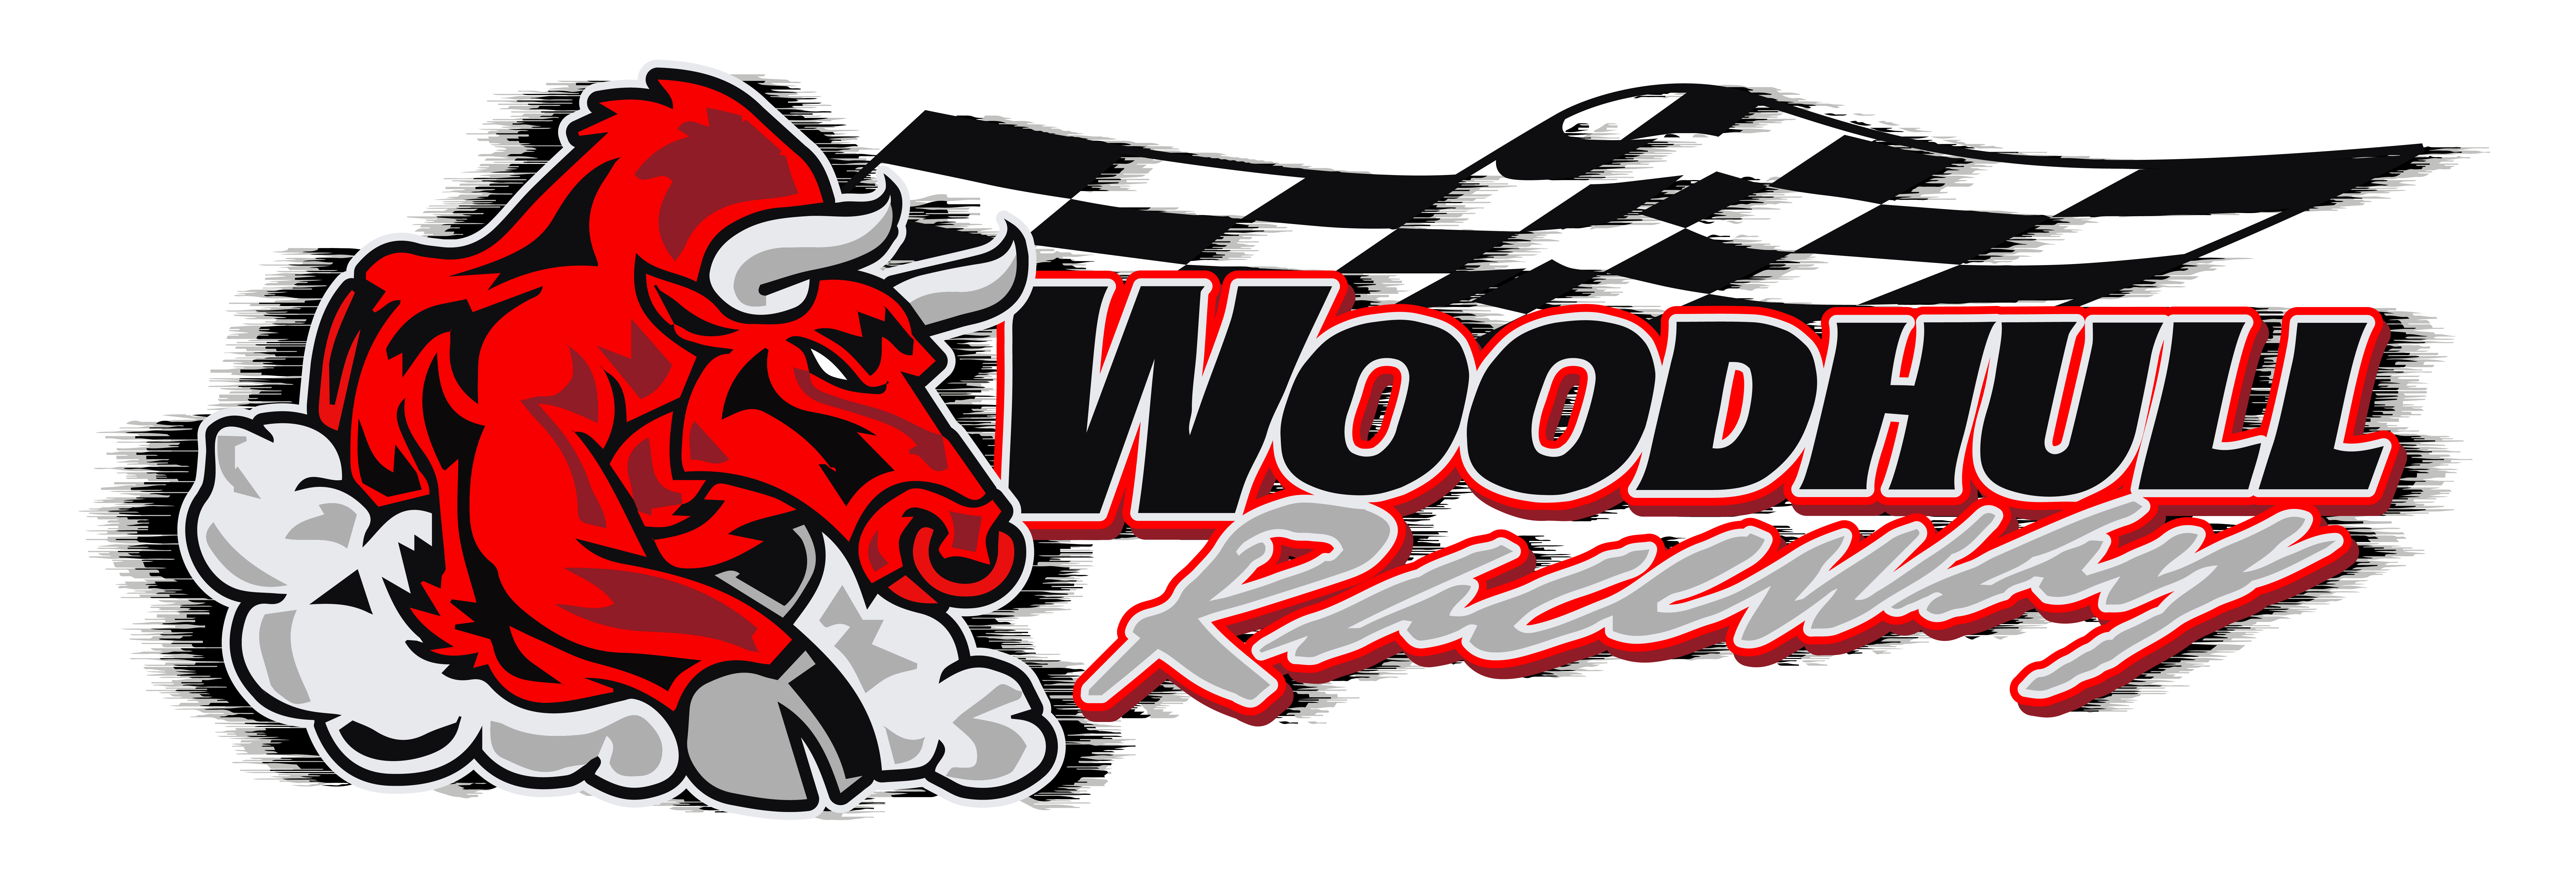 Woodhull Raceway Official Results April 28, 2018 Bobby Hull Jr